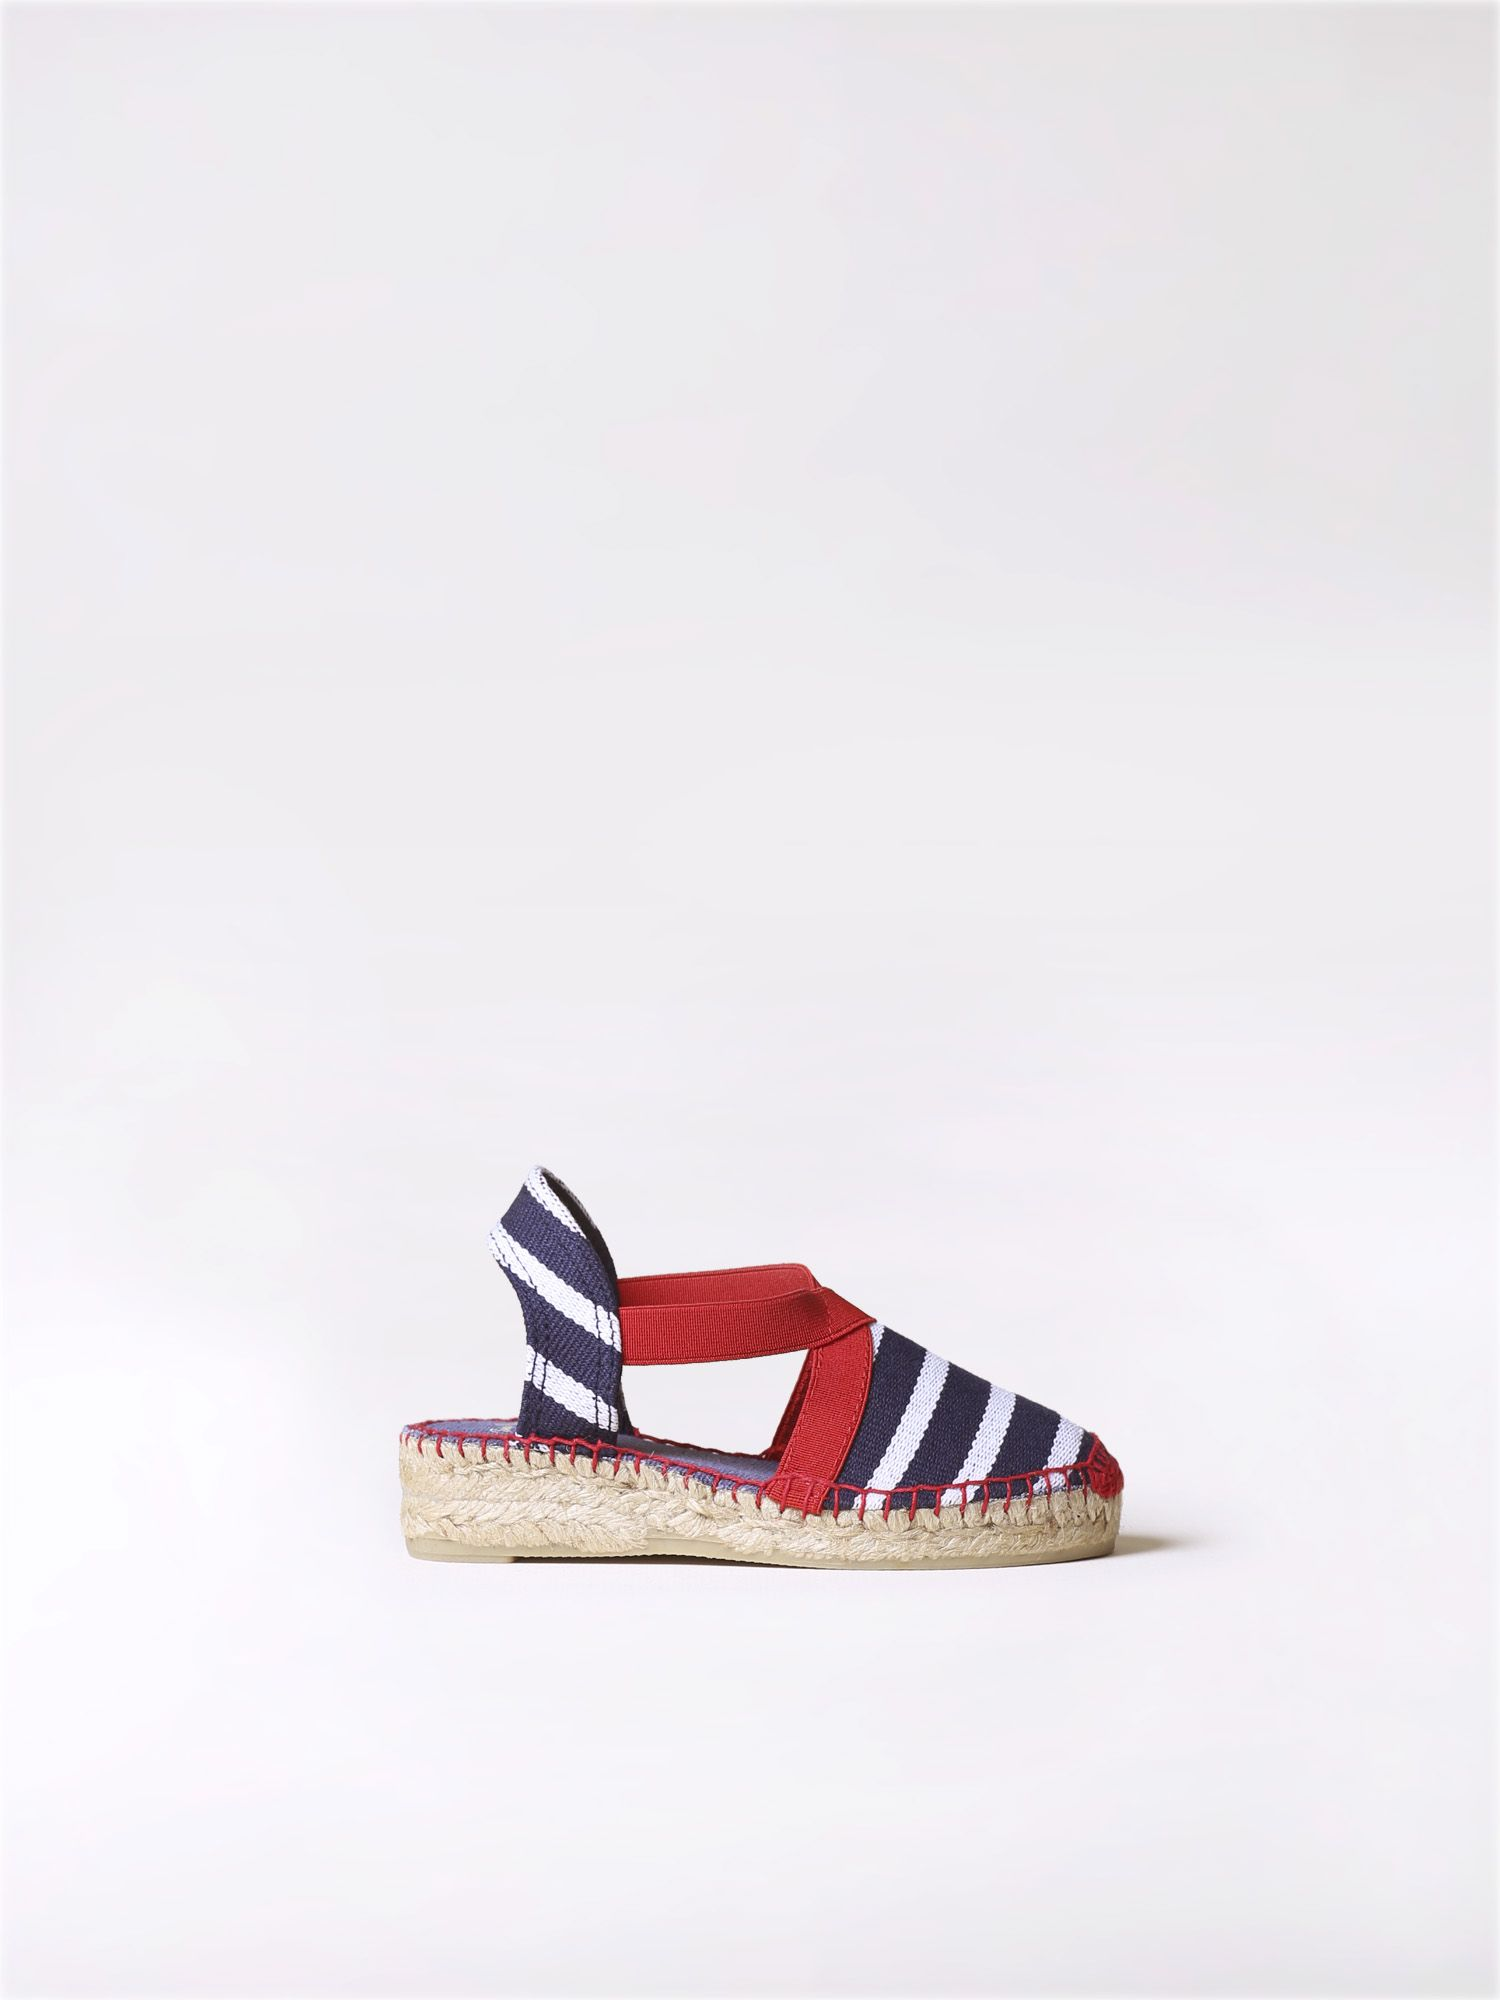 Vegan espadrille with navy stripes - EDITA-BR